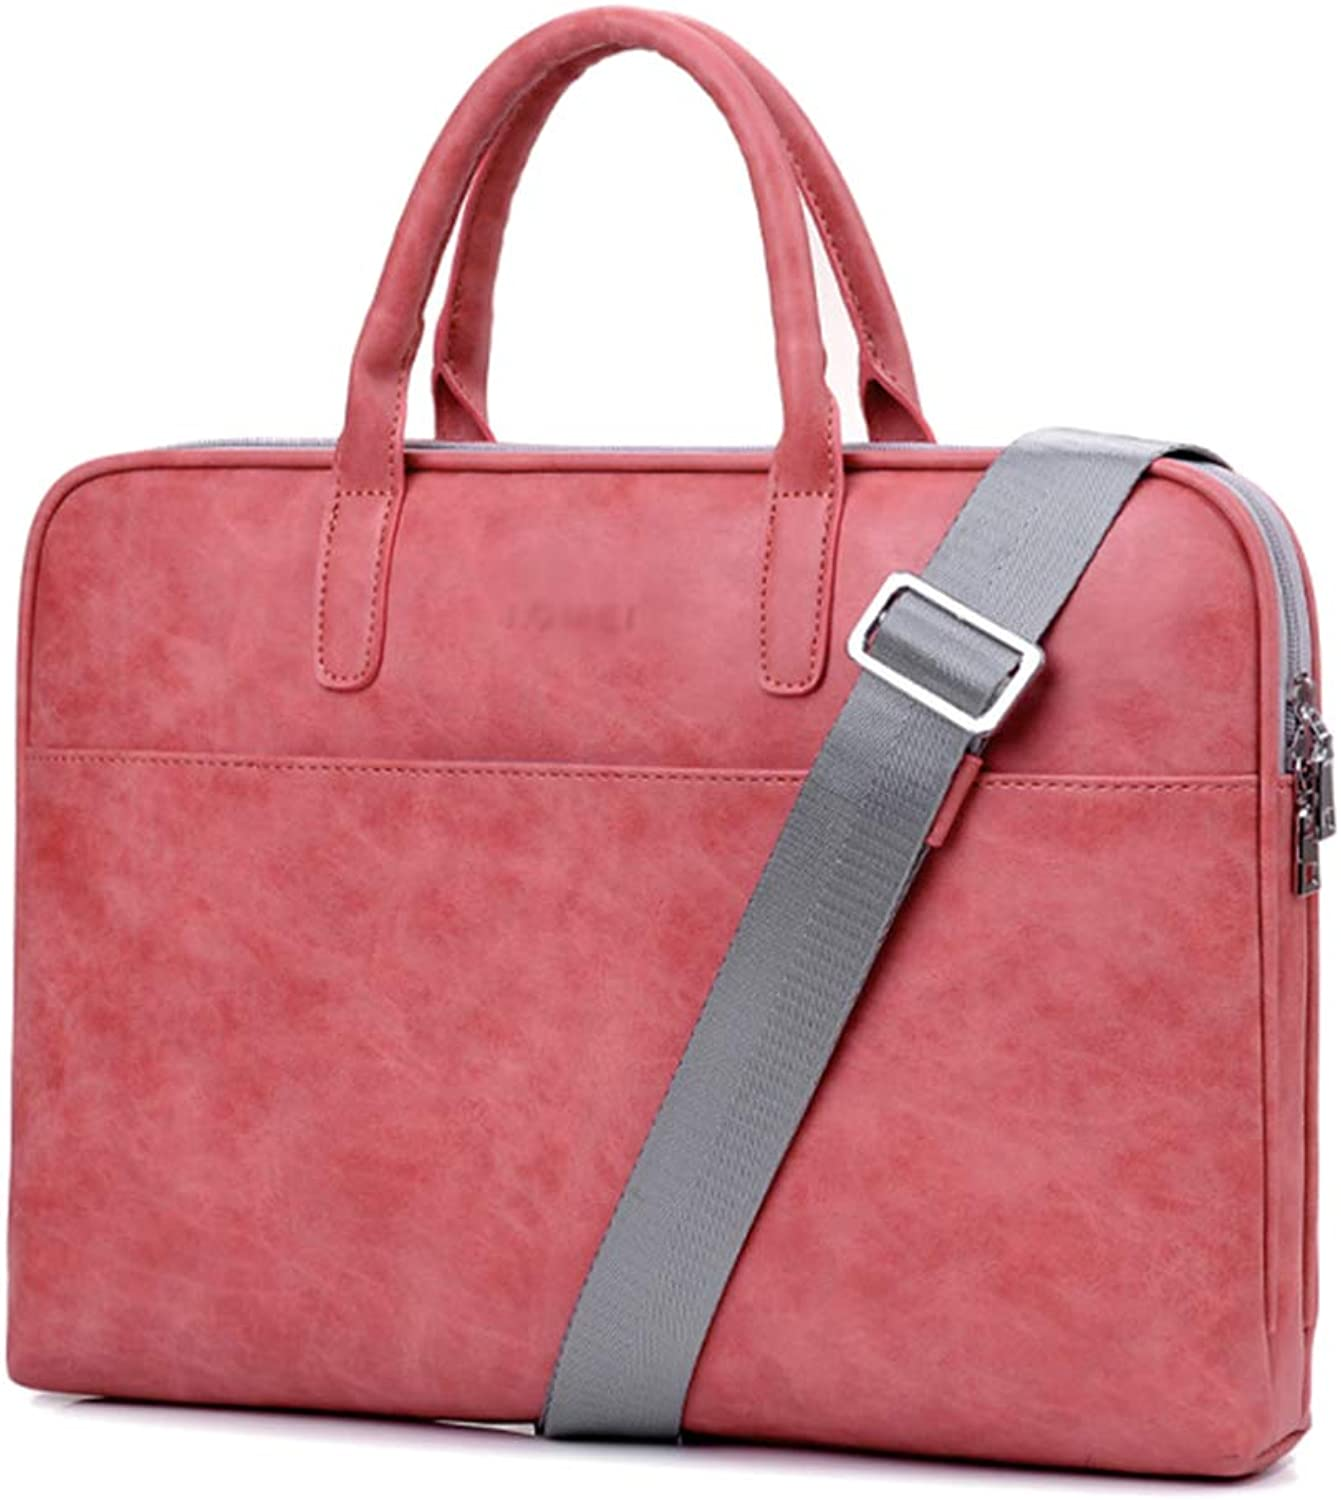 7bd0a3ccaa45 Notebook Laptop Laptop Cover,Red,15Inch Skin Pouch Pocket Zipper ...